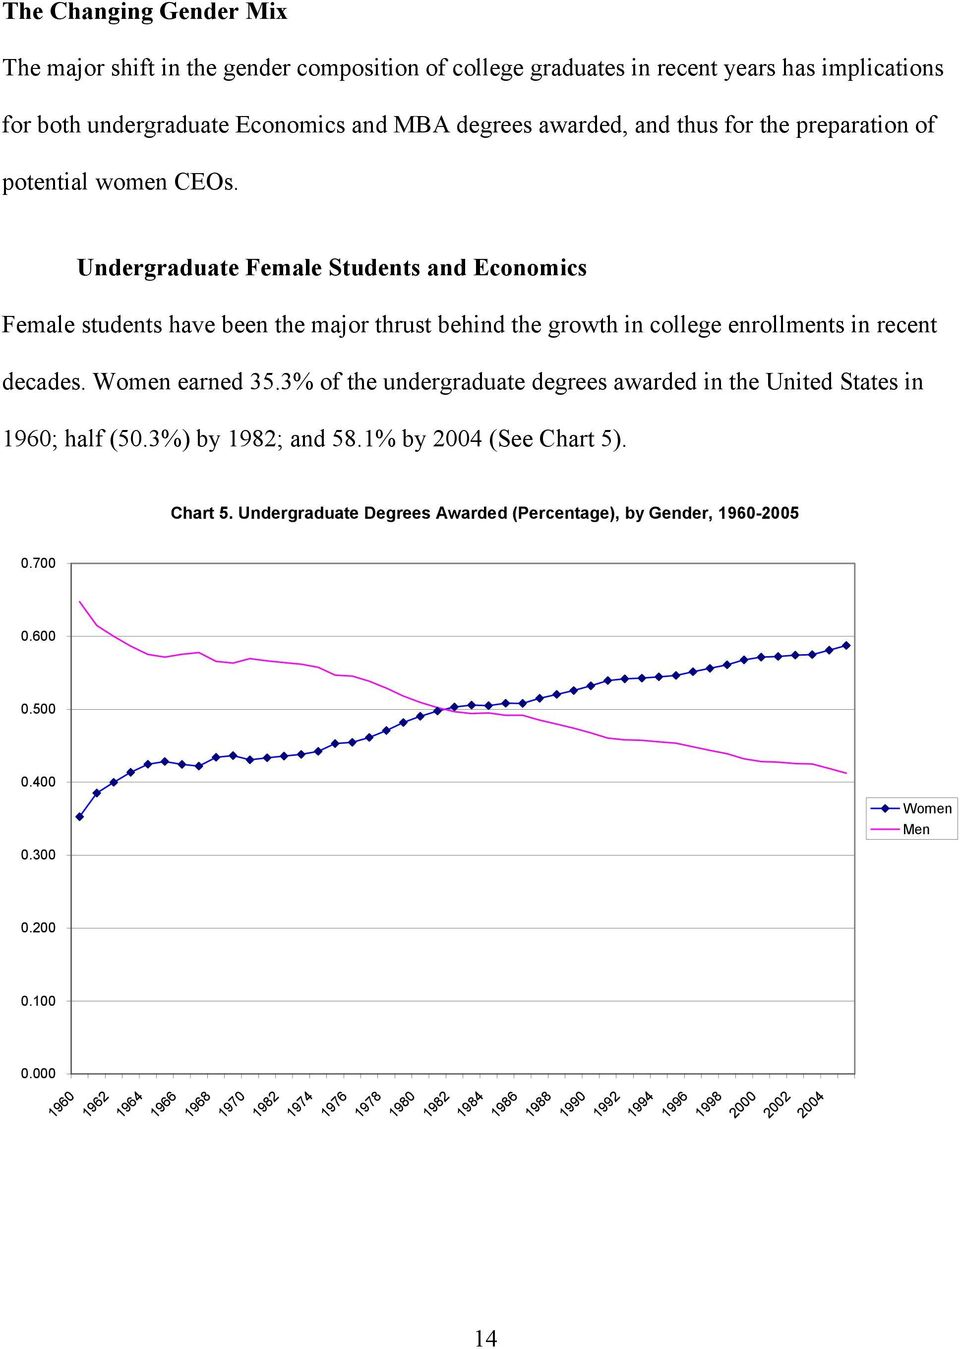 Women earned 35.3% of the undergraduate degrees awarded in the United States in 1960; half (50.3%) by 1982; and 58.1% by 2004 (See Chart 5)